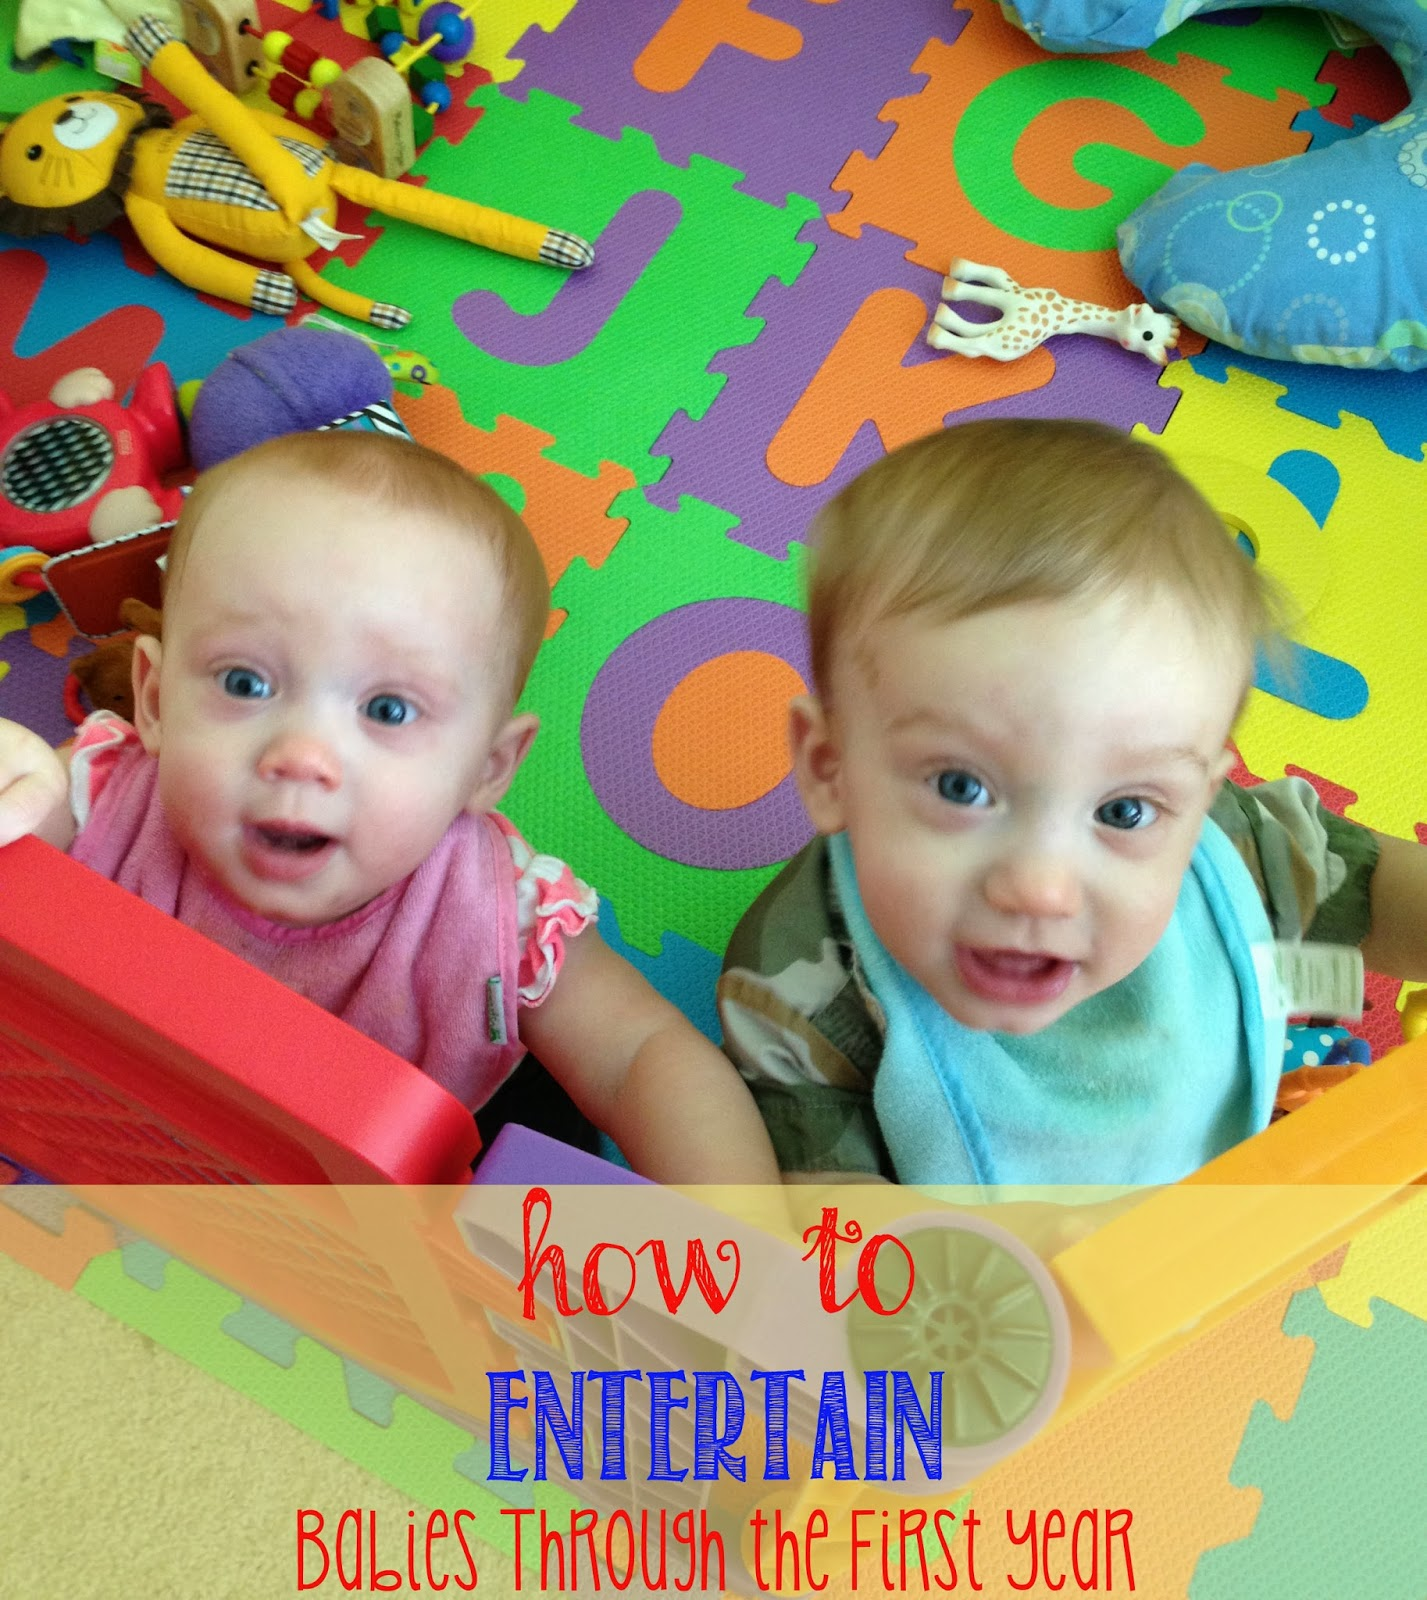 Tips, how to's and toy suggestions for baby's first year! #totschool #earlylearning #homeschool